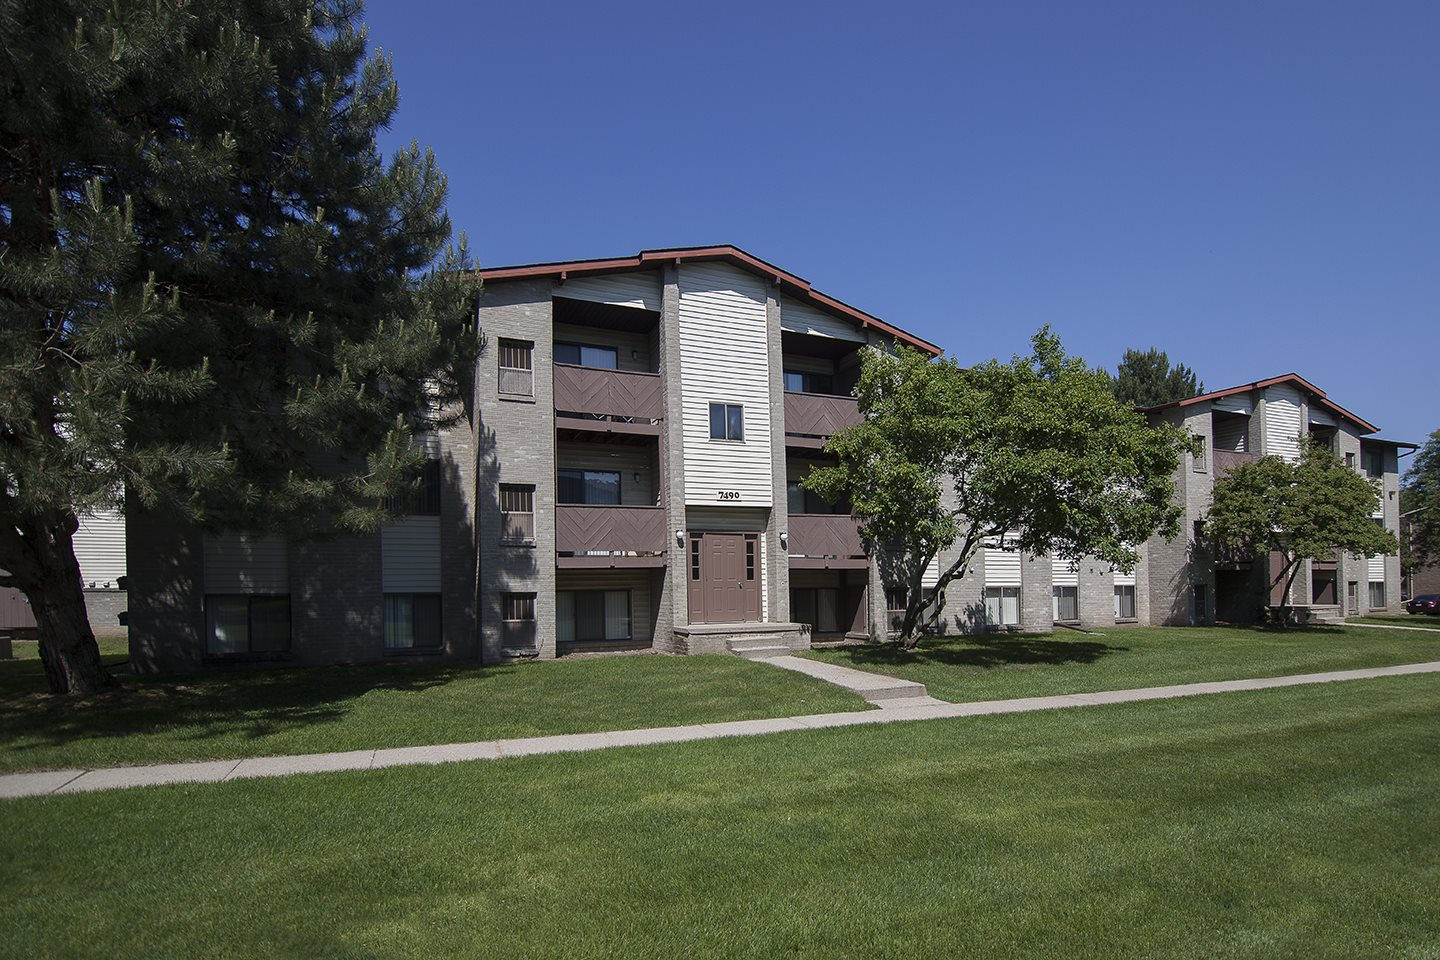 Three story apartment building exterior at Woodland Villa Apartments in Westland